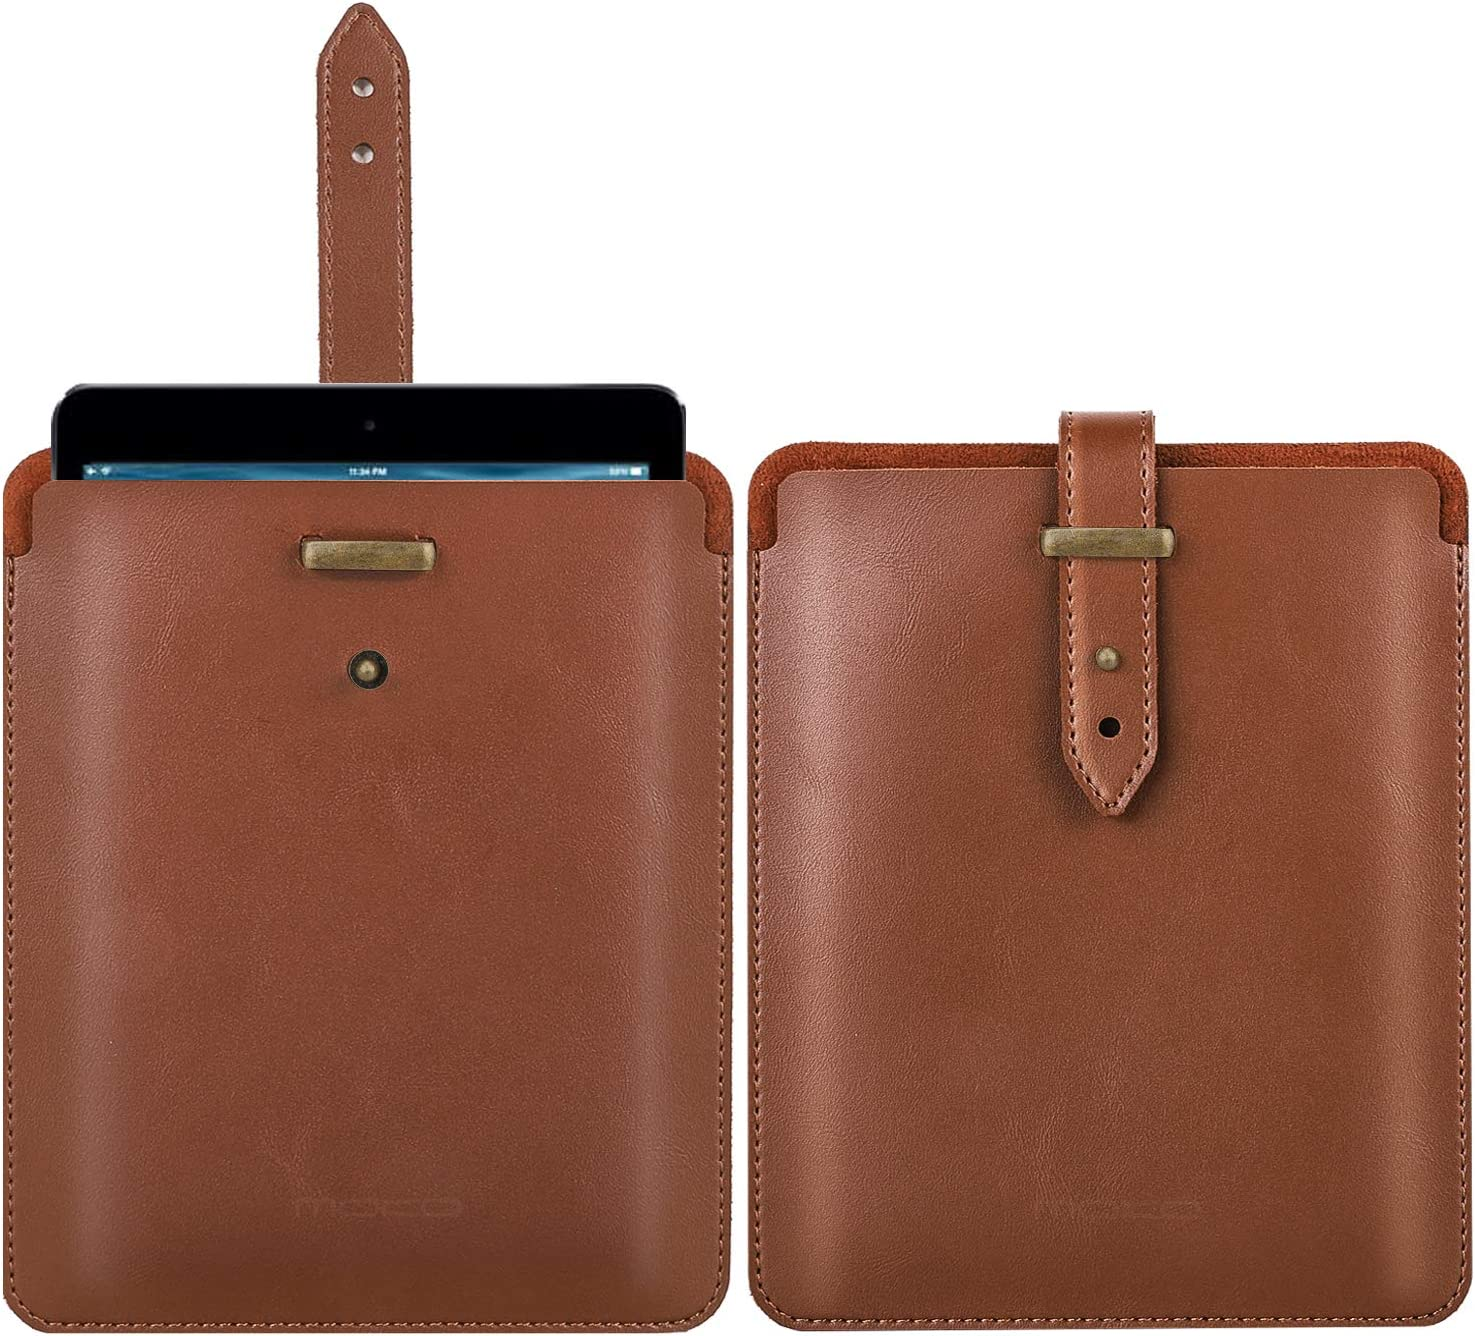 MoKo 9.7 Inch Sleeve Case Compatible with iPad 9.7 6th / 5th Generation (2018/2017), iPad Air/Air 2, iPad Pro 9.7, PU Leather Protective Lightweight Portable Pouch Cover Bag - Brown